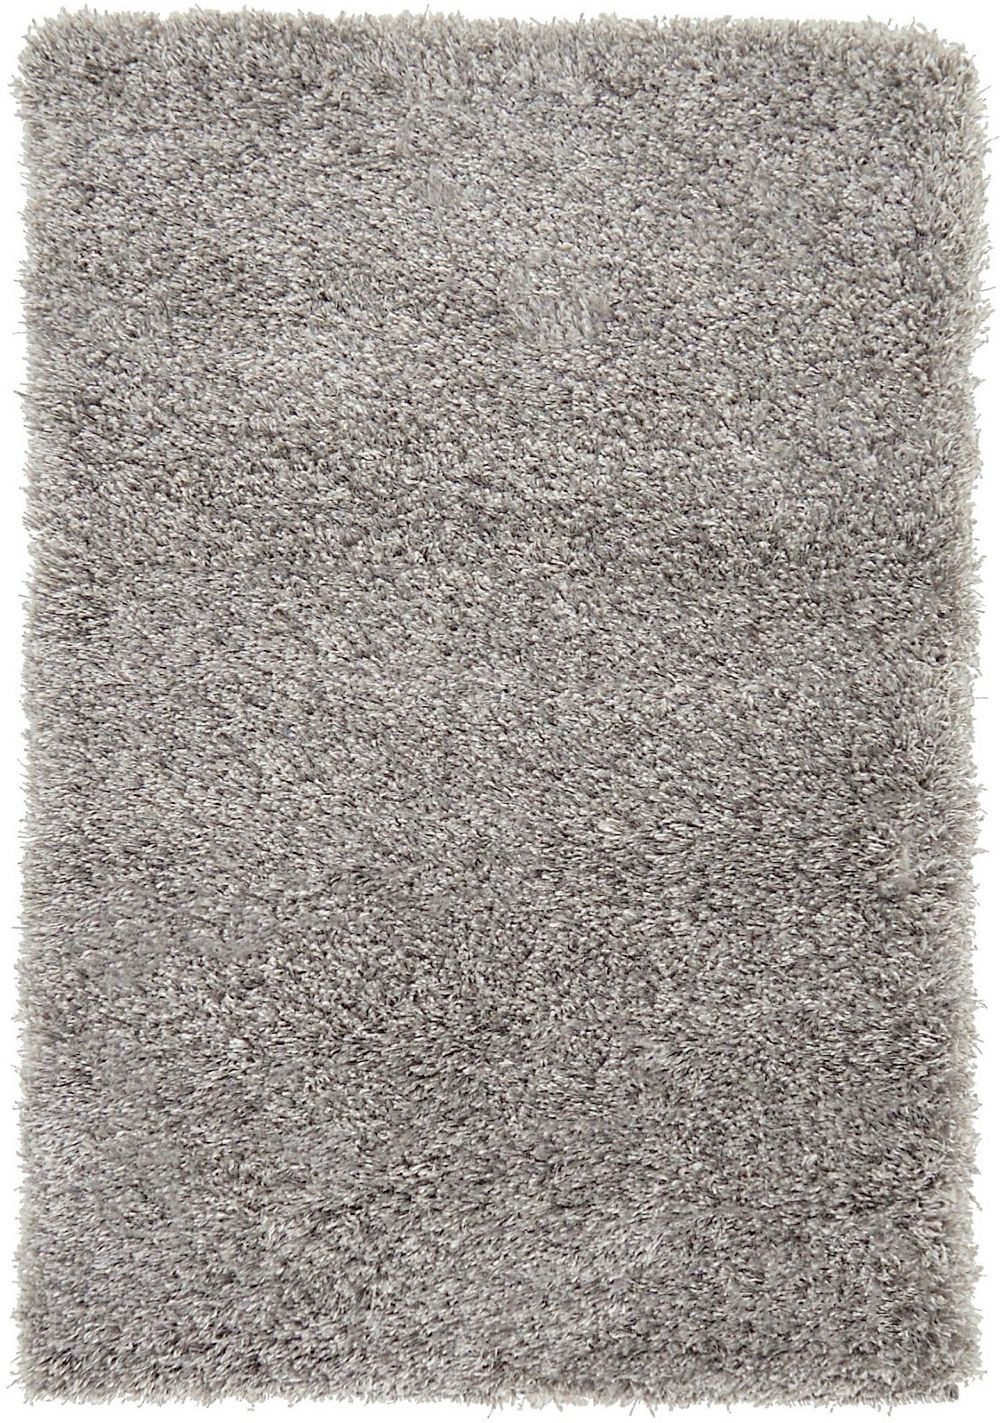 rugpal splendid shag shag area rug collection